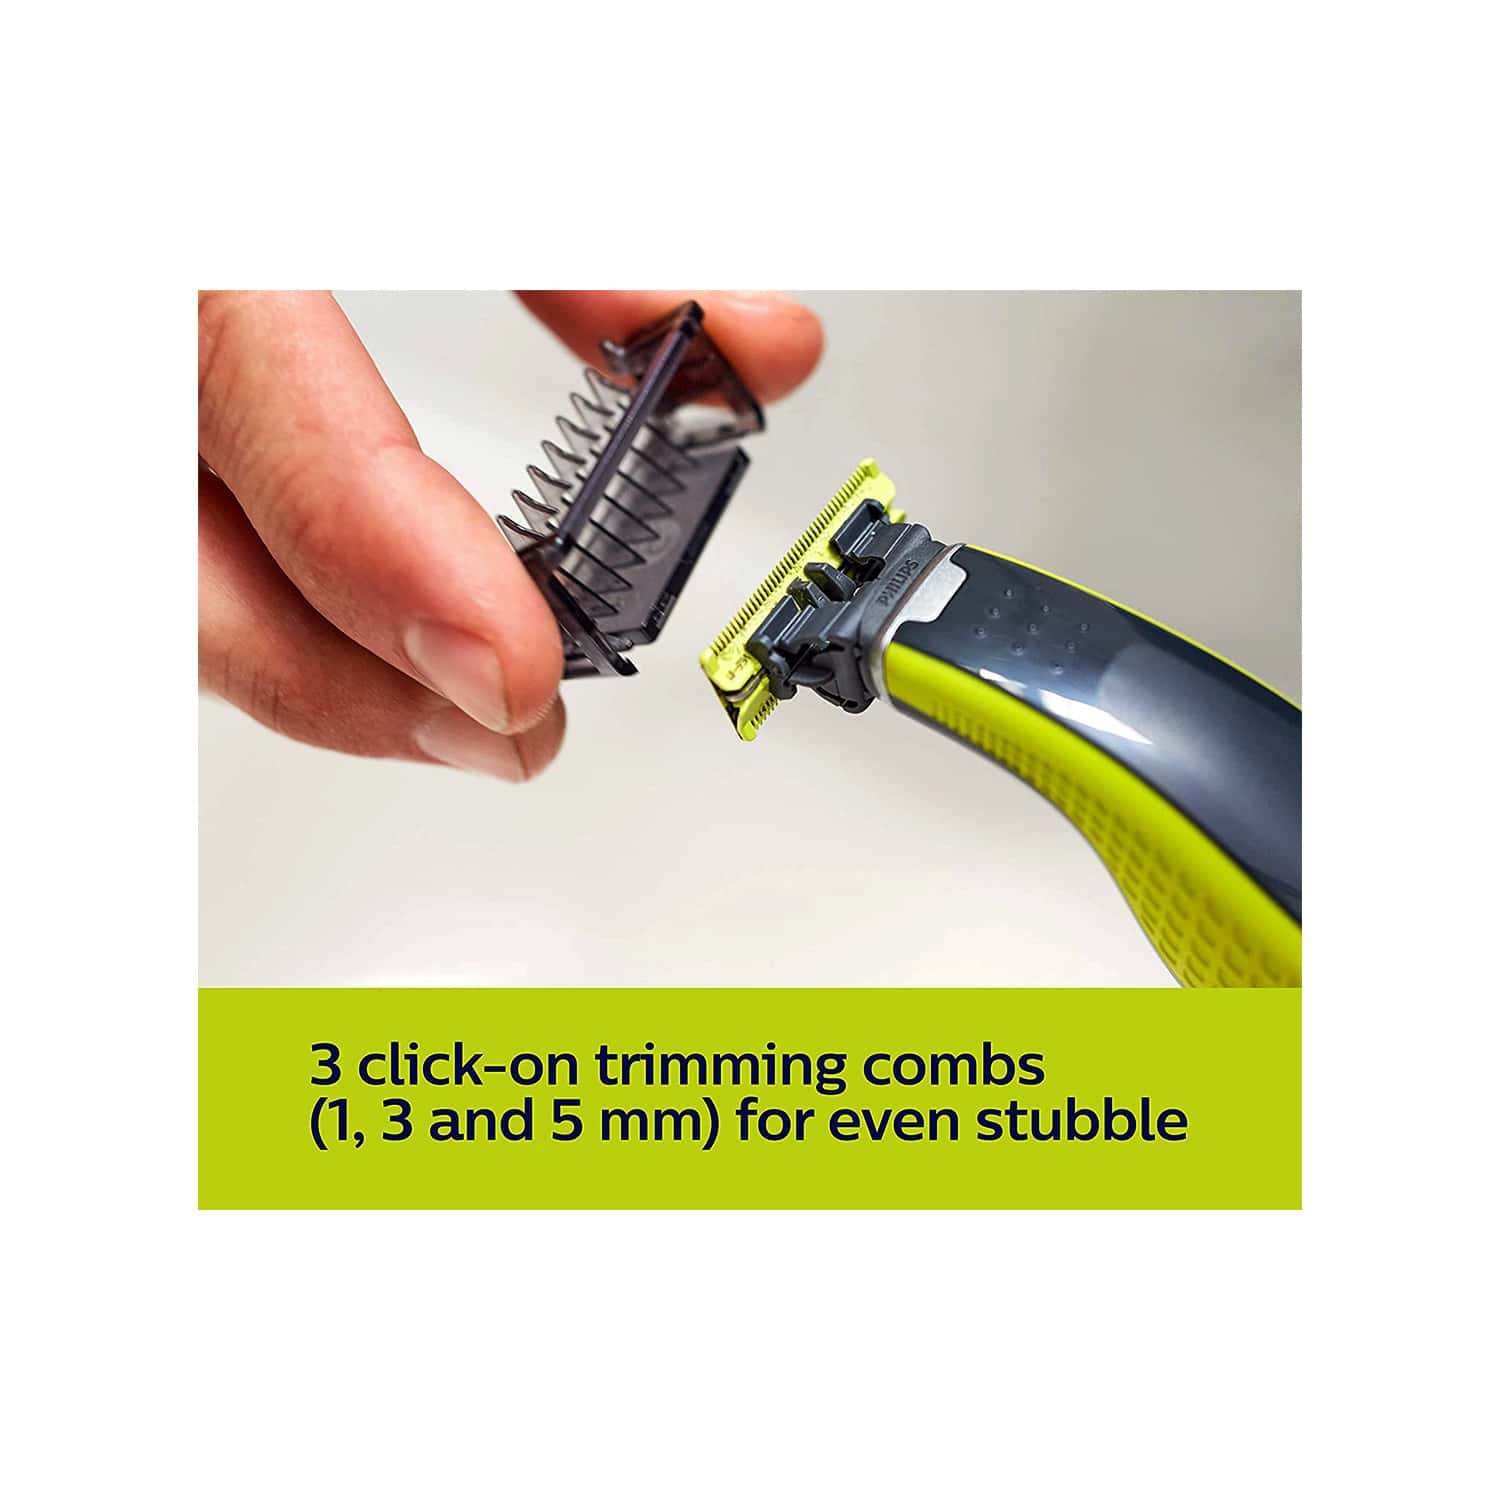 Philips Qp2526/10 Oneblade Hybrid Trimmer And Shaver With 3 Trimming Combs And Extra Blade